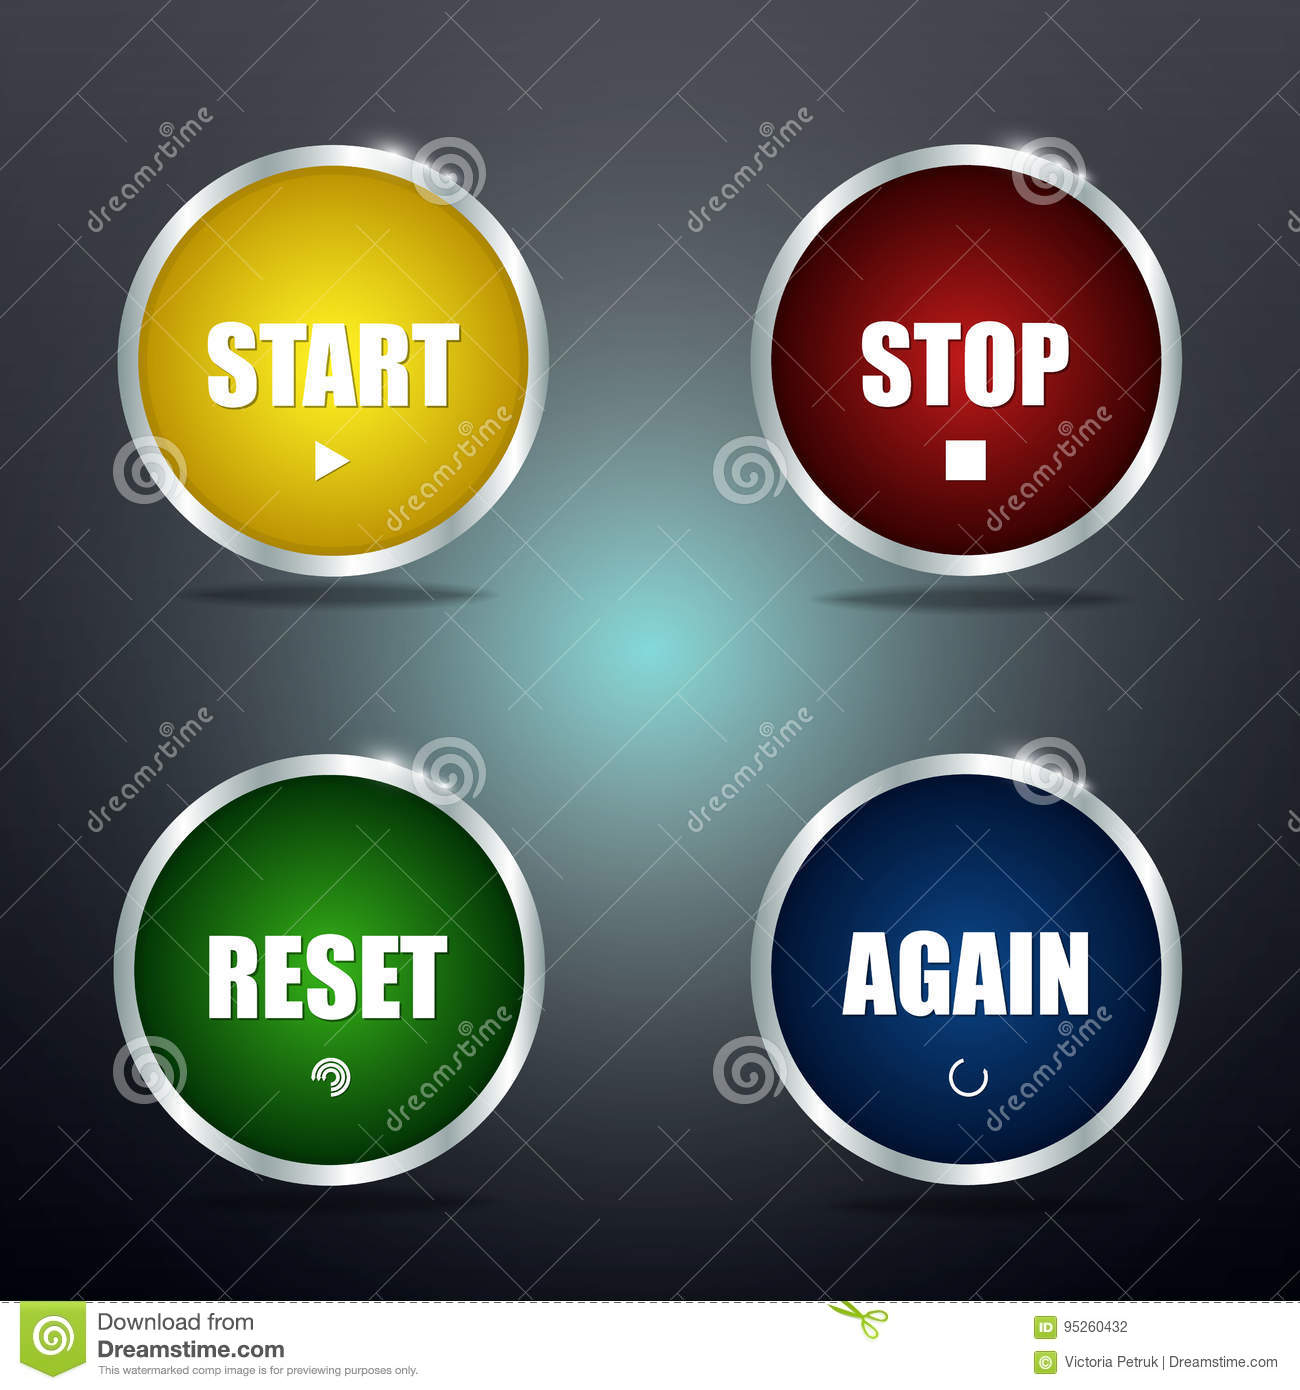 Start reset stop and again buttons